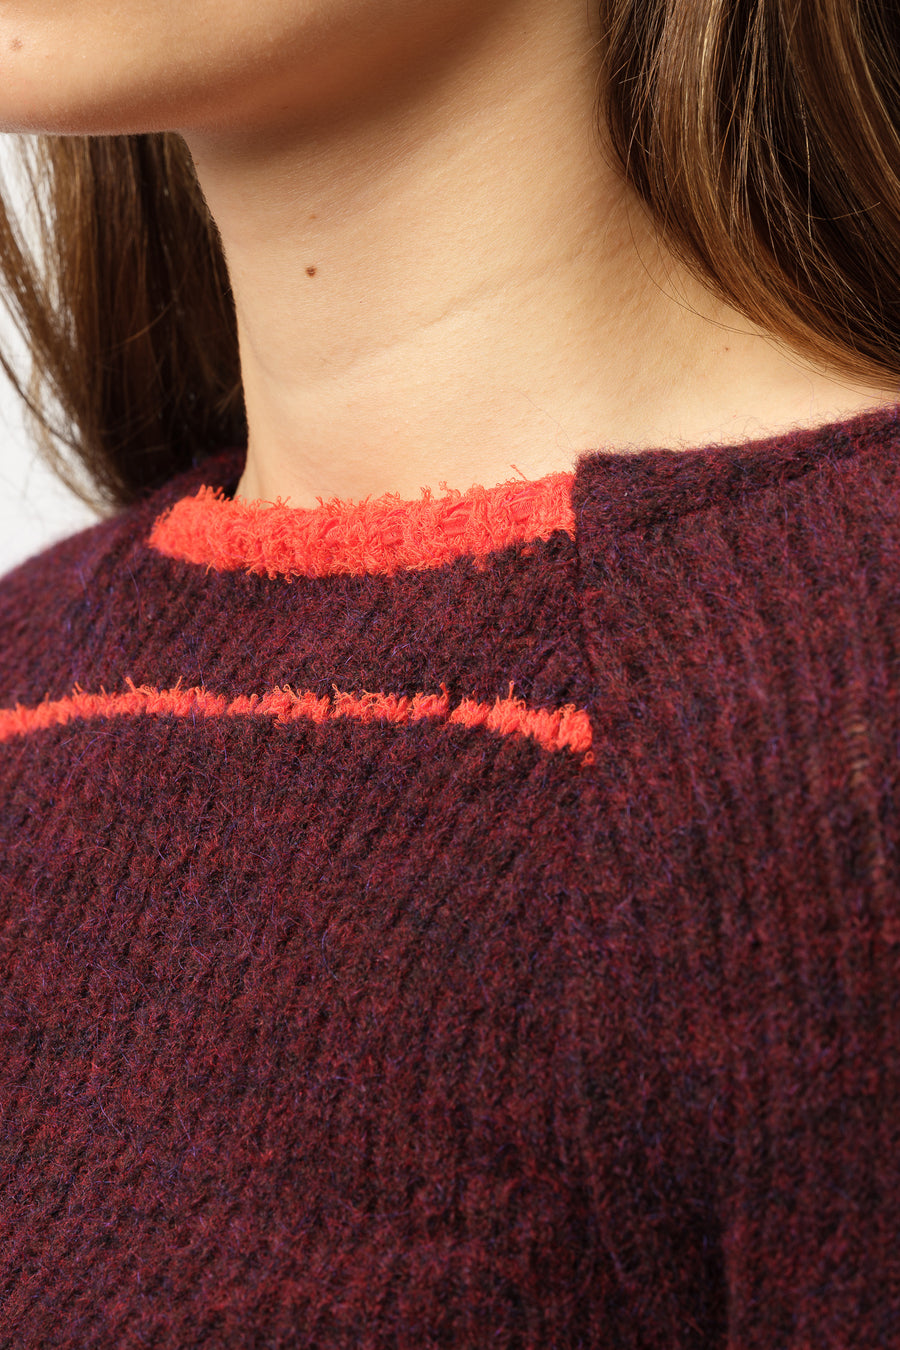 Eckhaus Latta Heatwave Sweater in Amaranth - Notre